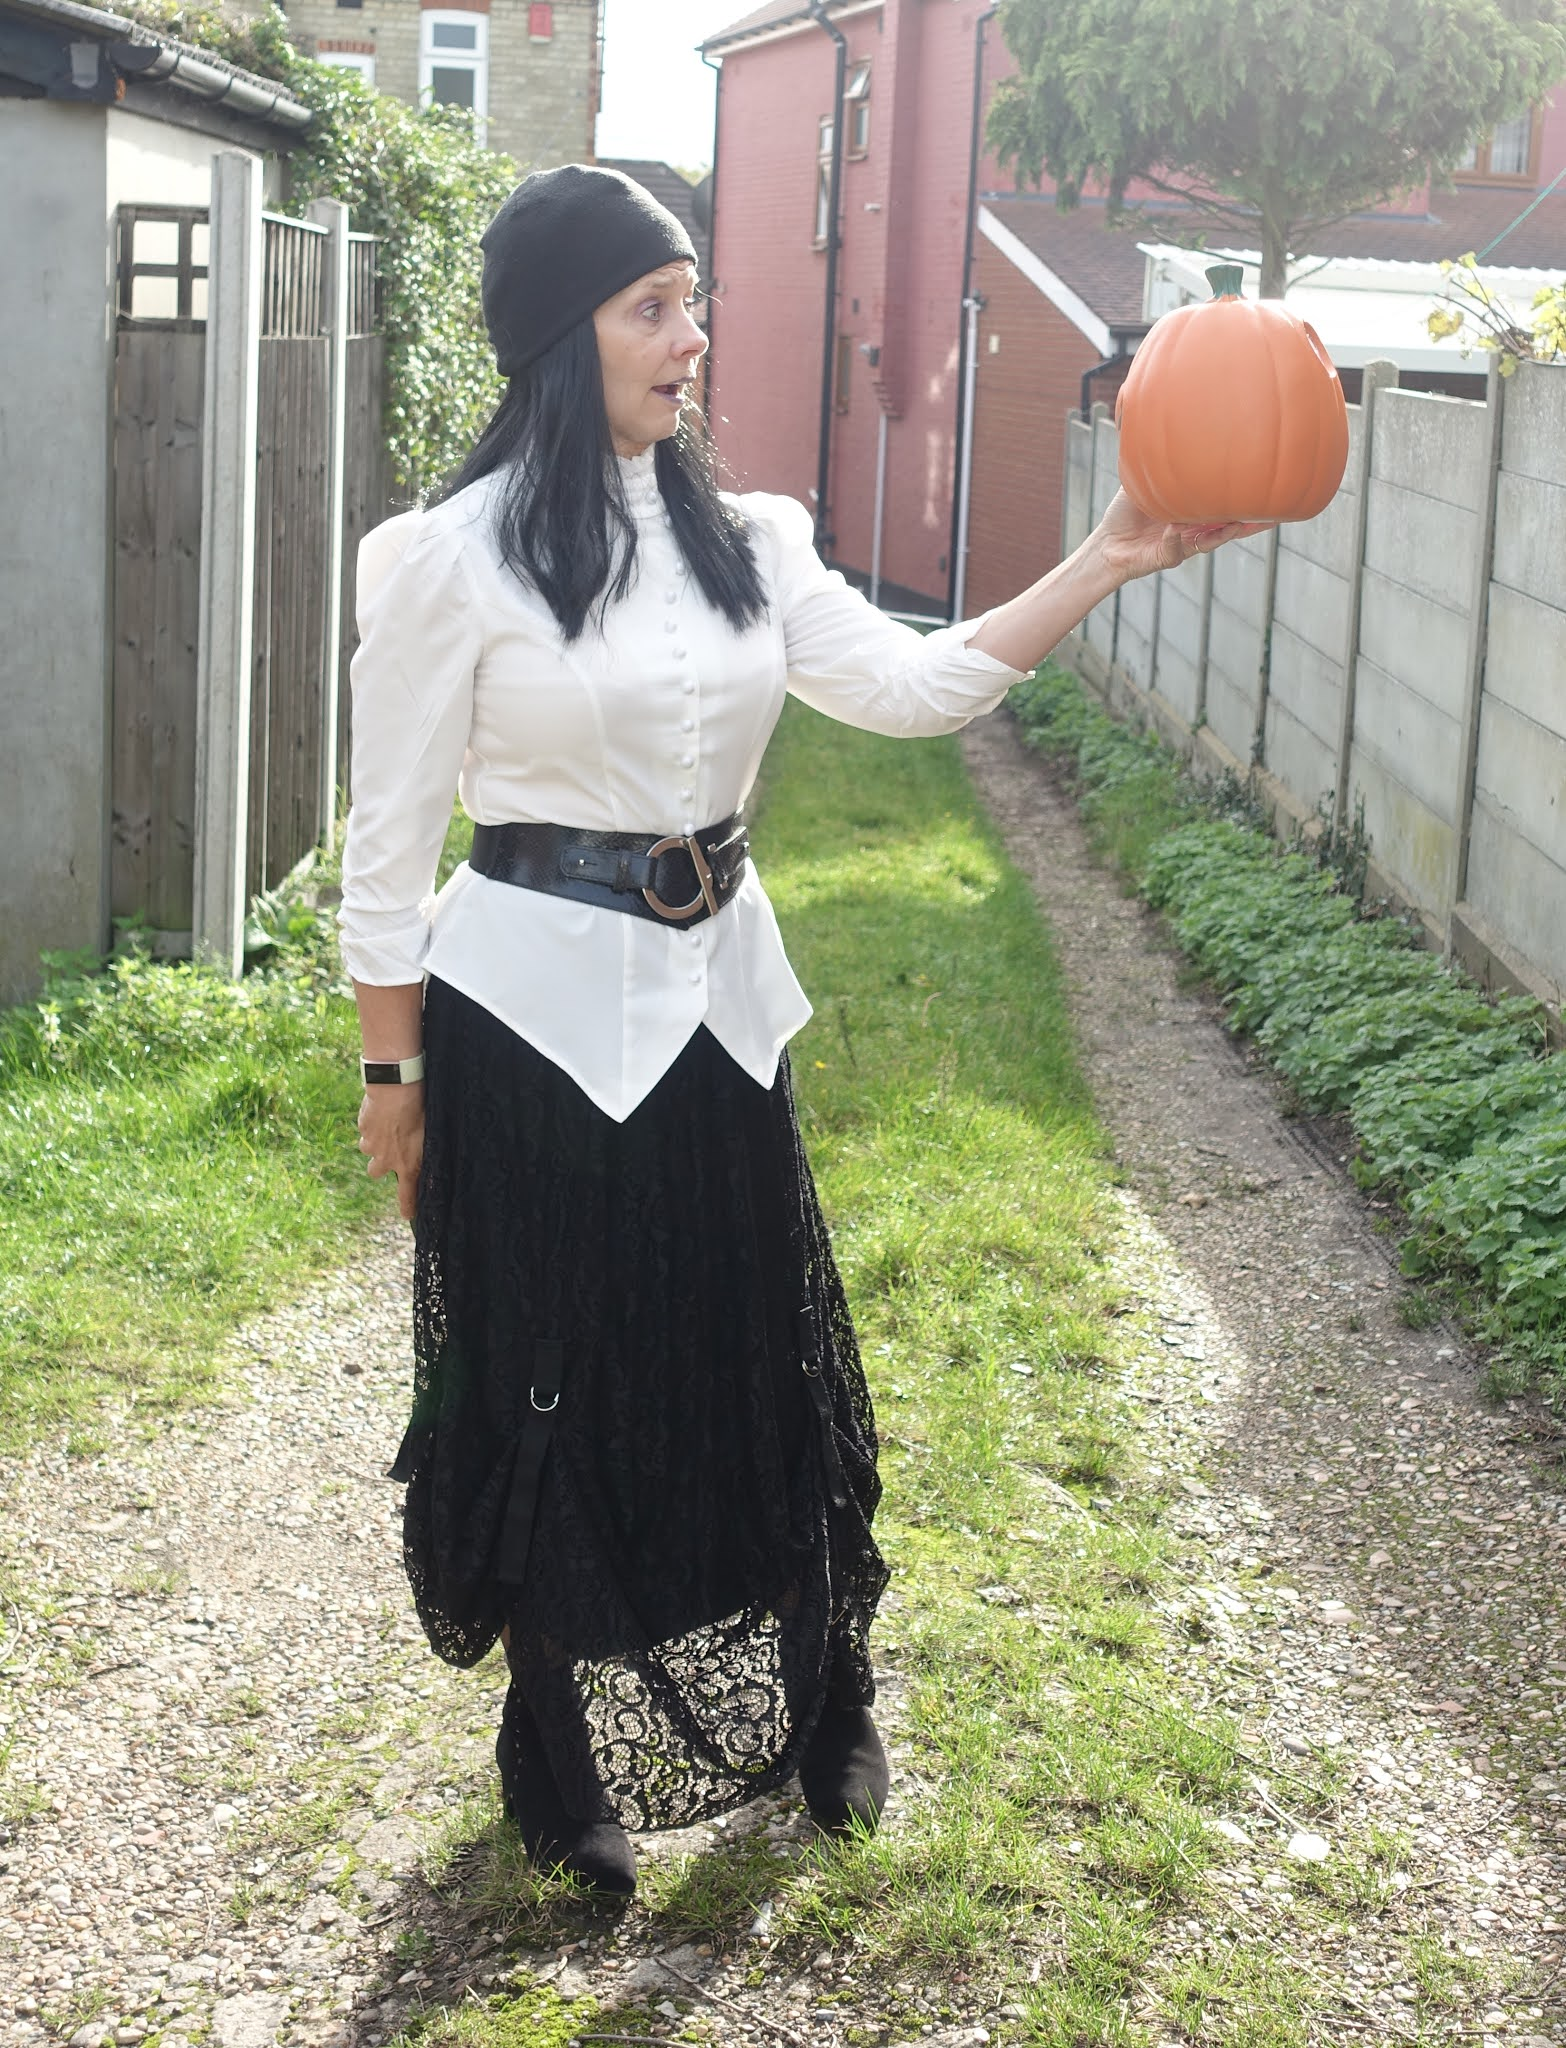 Alas poor pumpkin:  Is This Mutton style blogger Gail Hanlon with pumpkin in the Style Not Age Challenge Gothic Romance